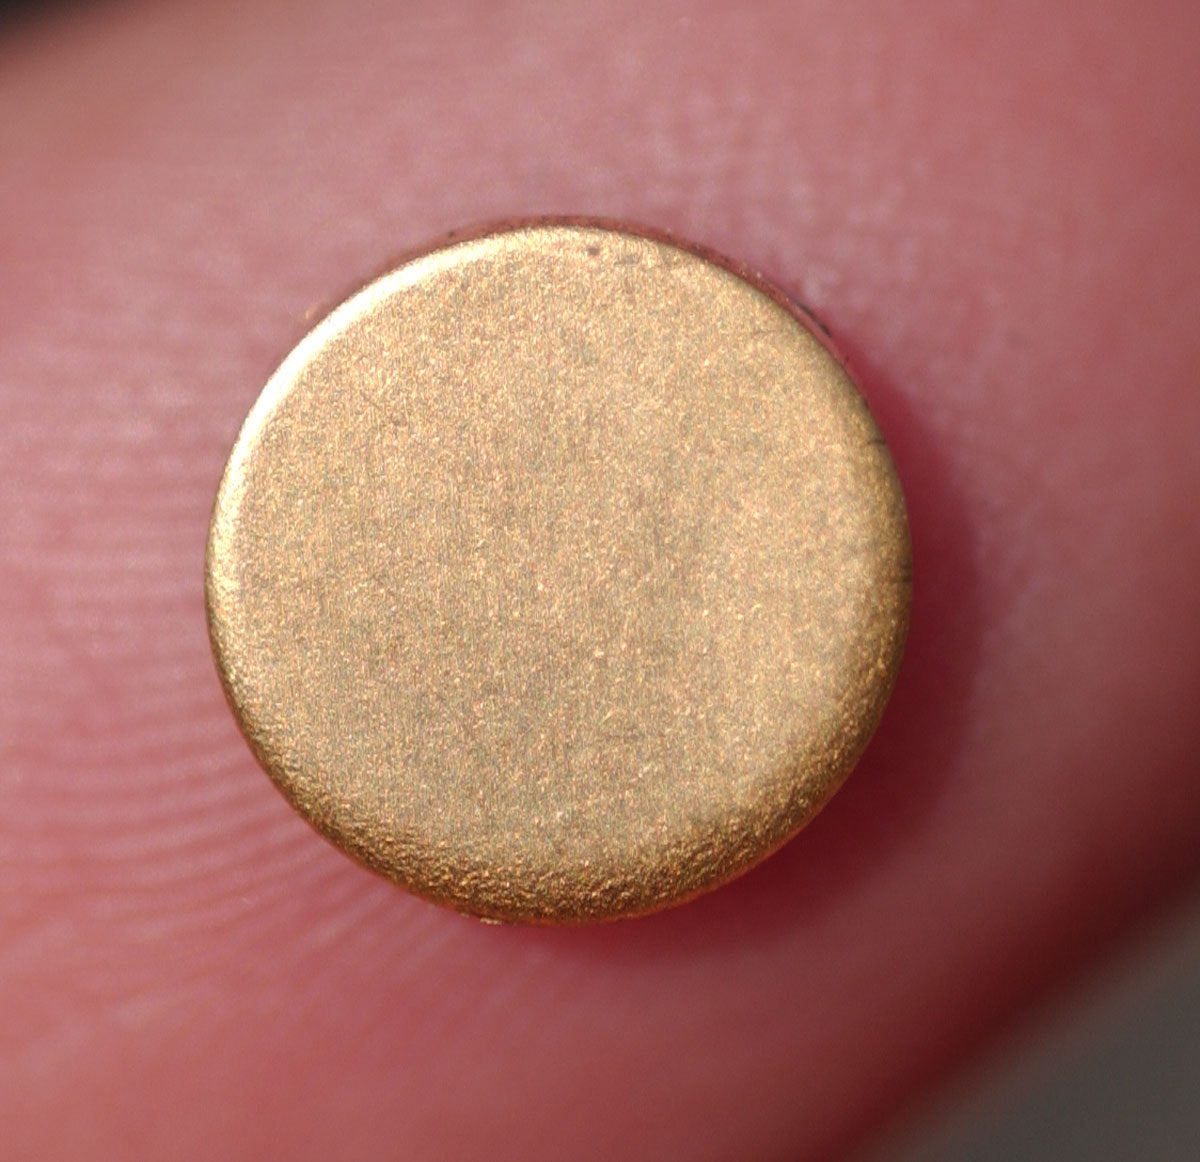 Buy 7mm Circle Variety of Metal Disc Blank 20g Circle Cutout for Soldering Stamping Texturing Blanks - 14 Pieces online